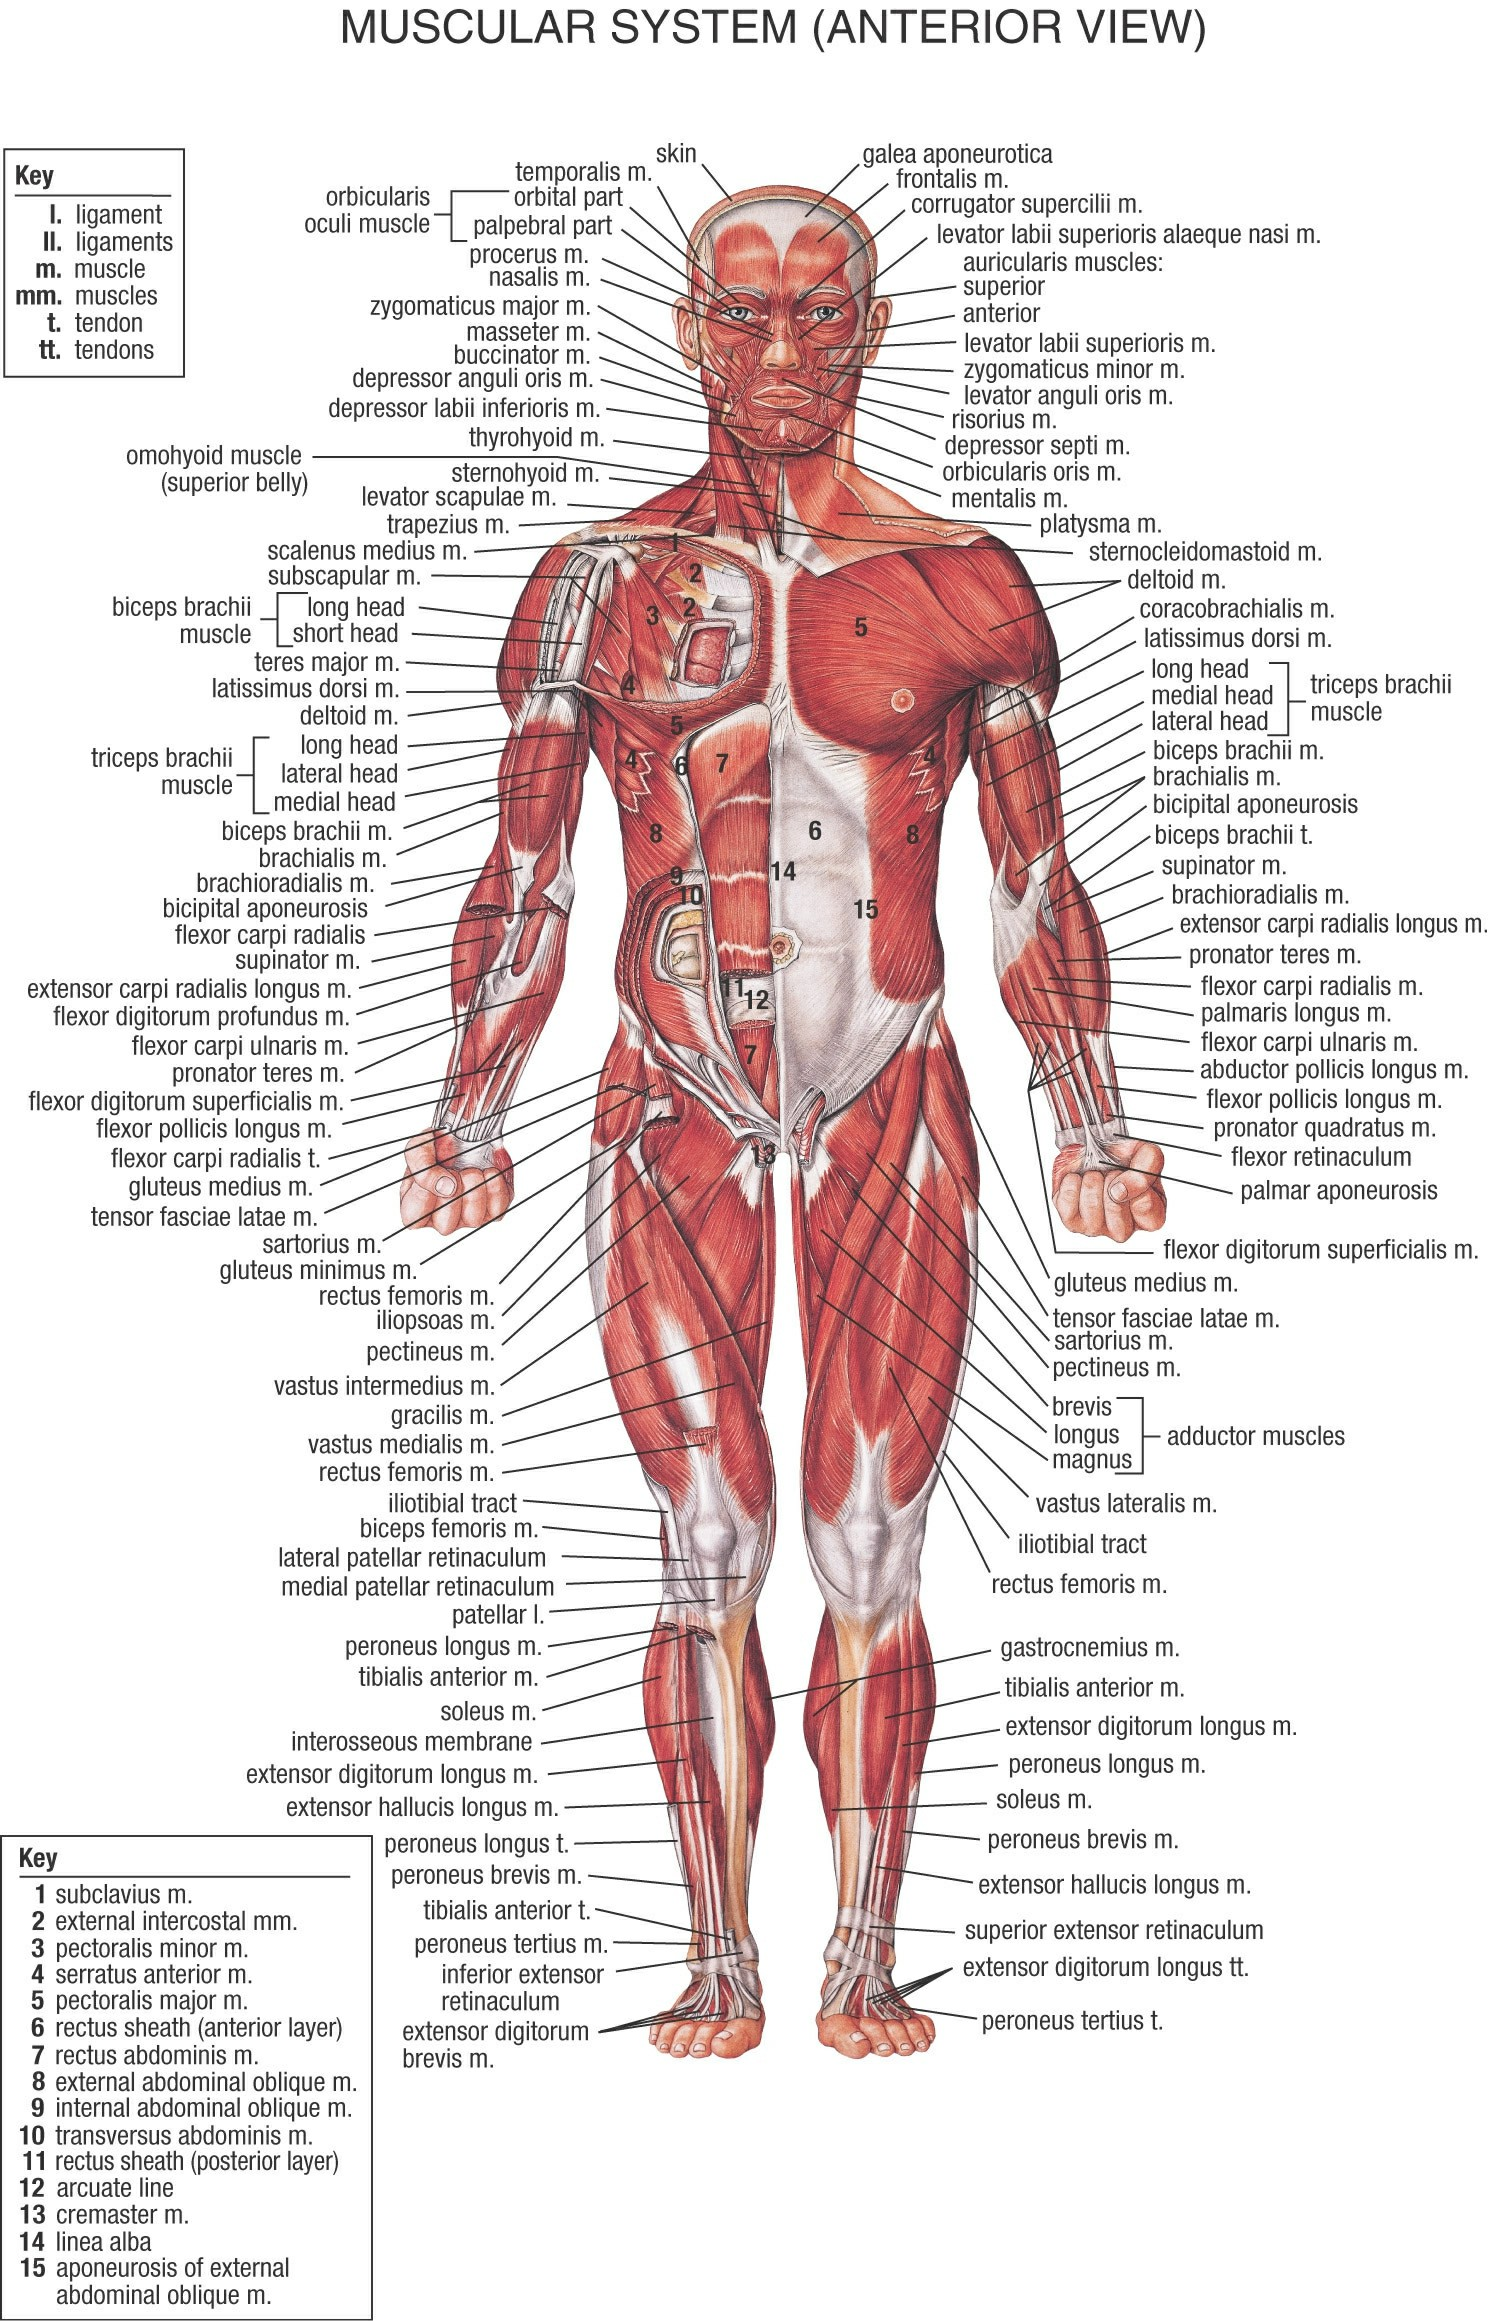 Muscular System Of Human 1000+ Images About Muscular System On Pinterest | Human Anatomy